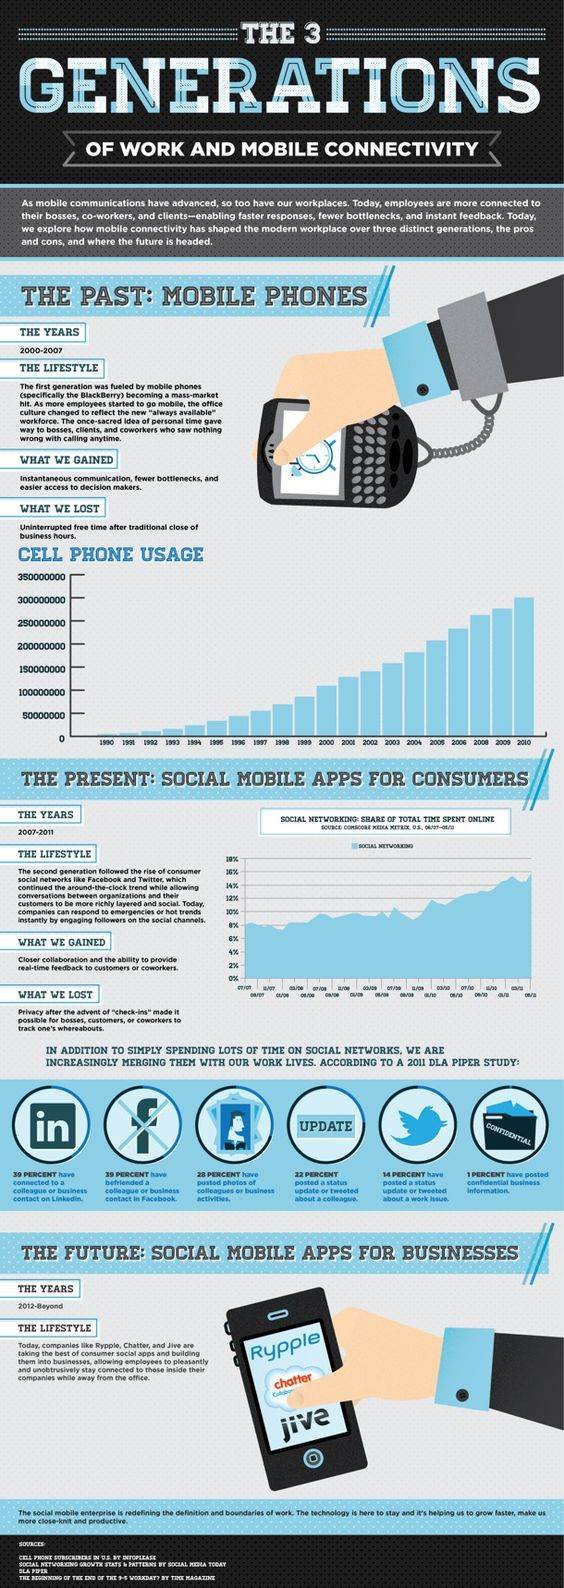 [Infographic] The Future of Social Mobile Communications in the Enterprise